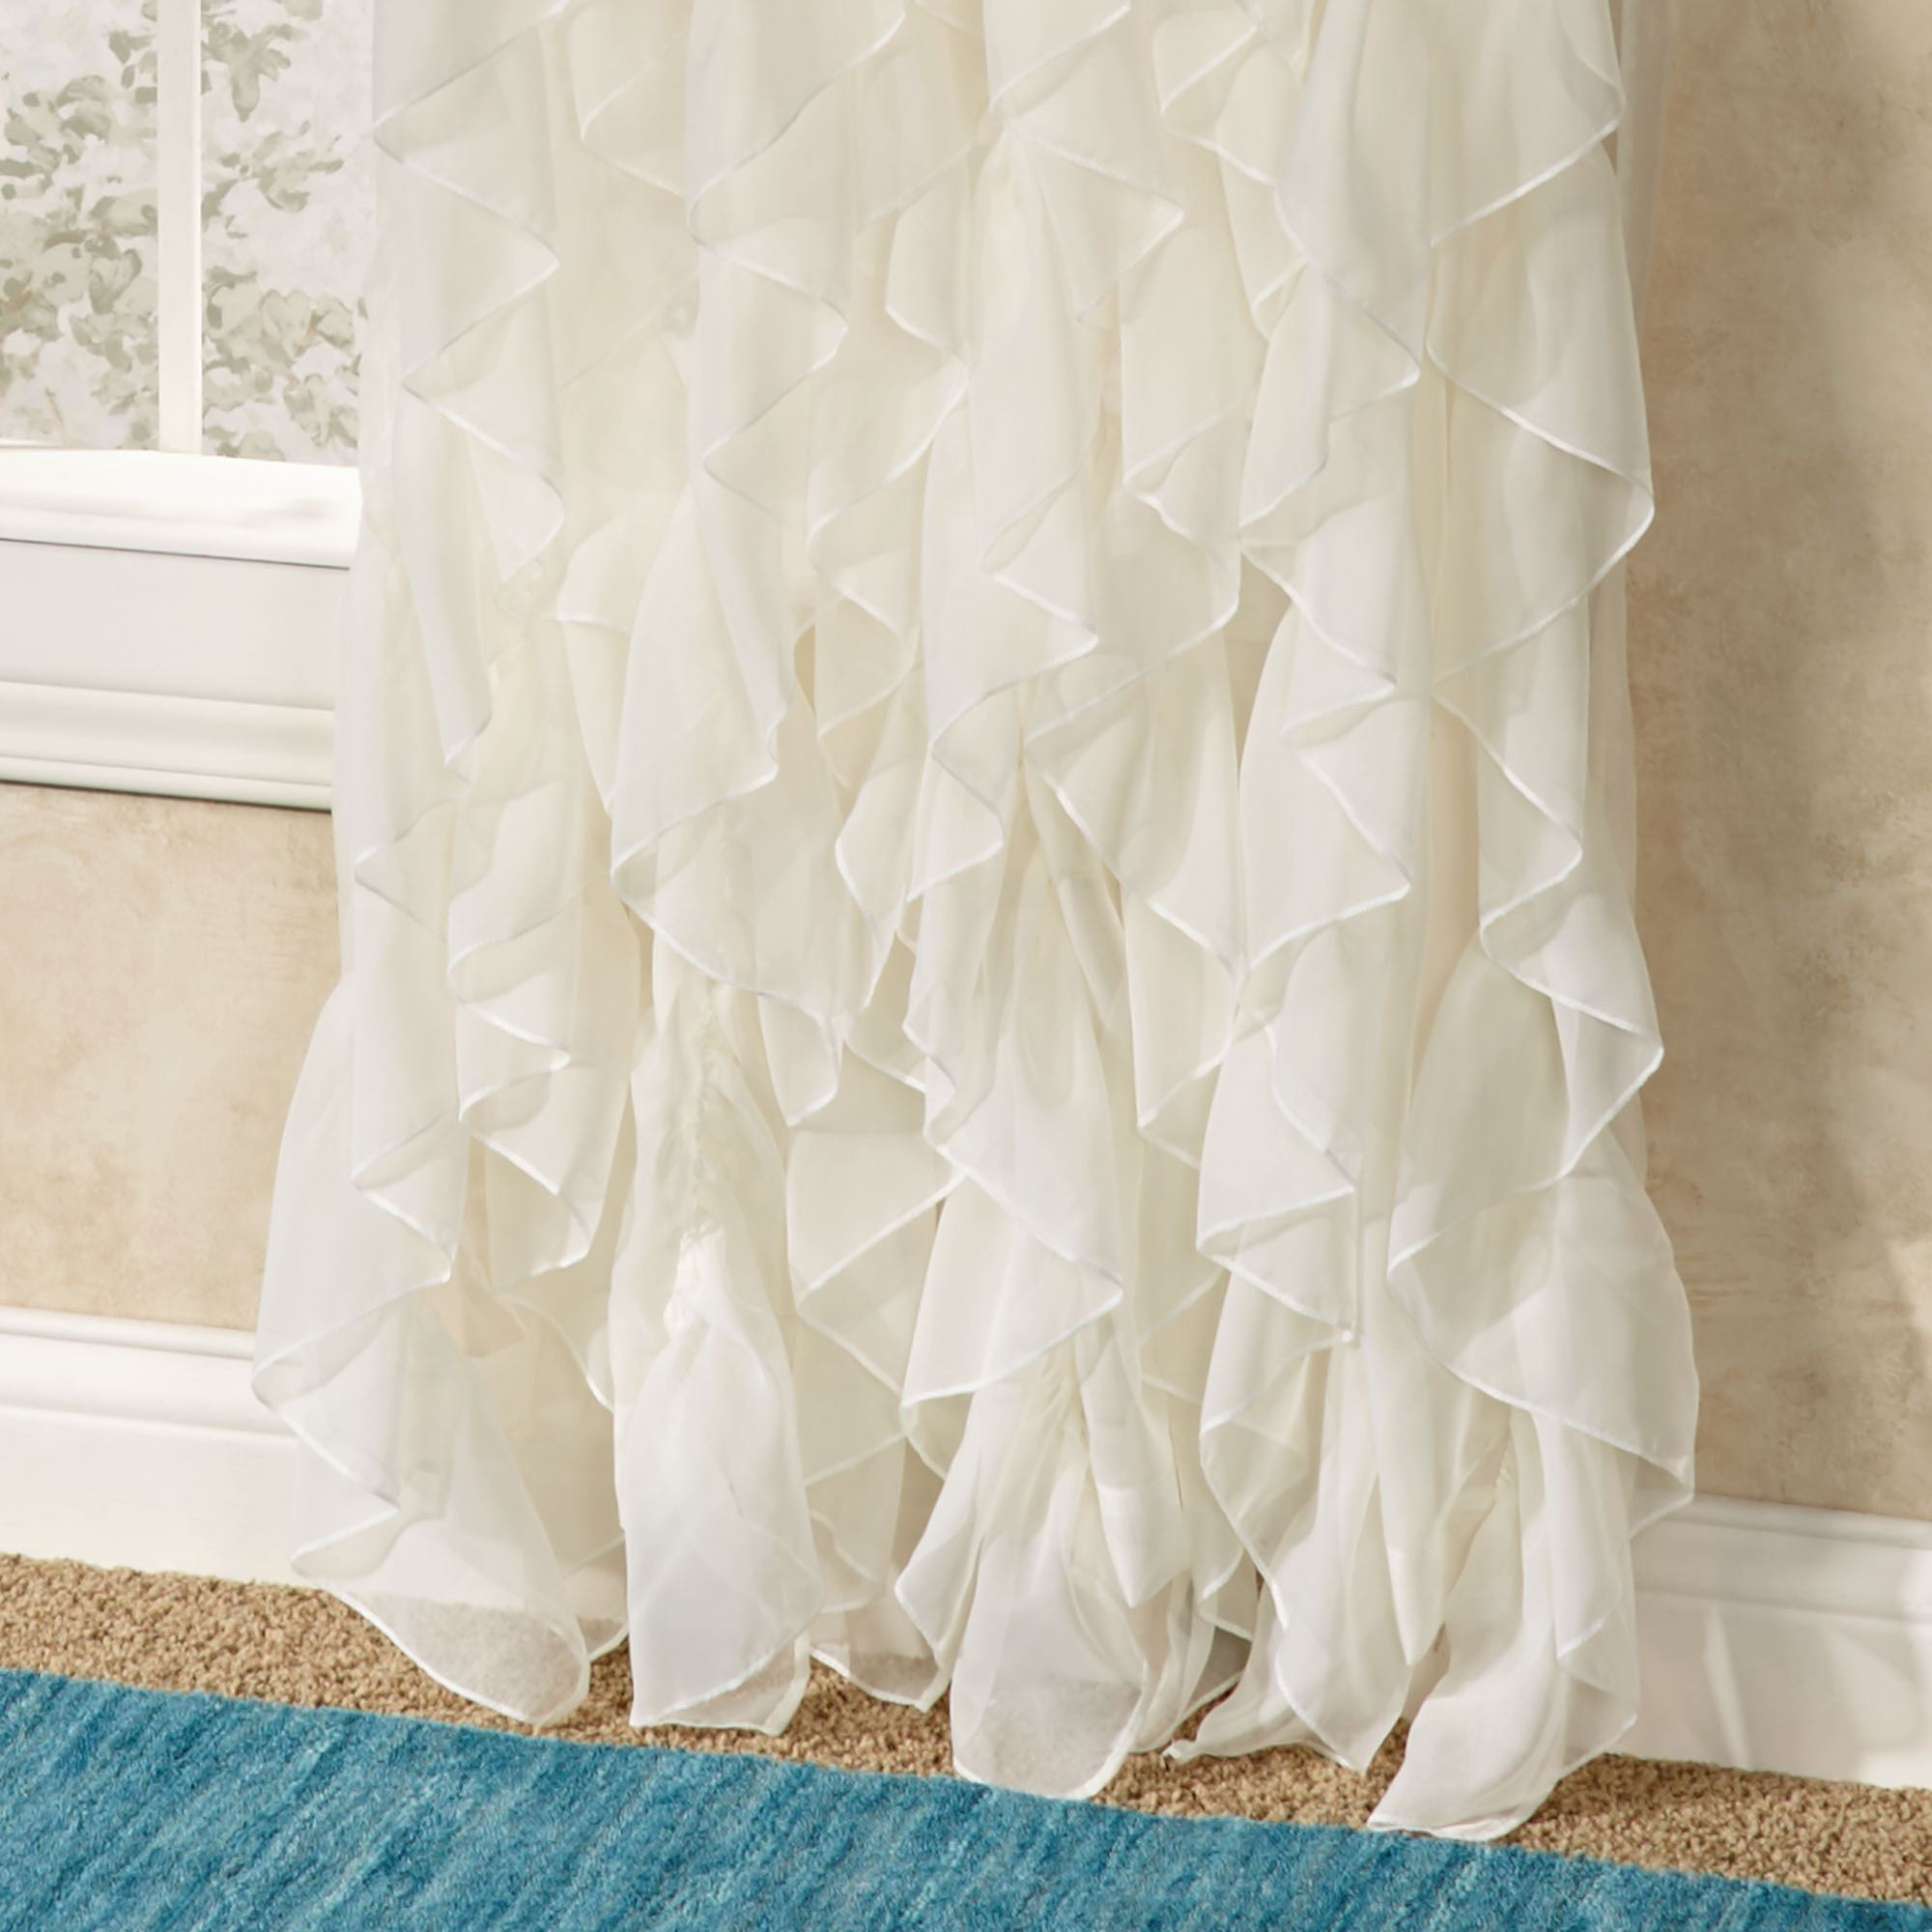 Well Known Cascade Sheer Voile Ruffled Window Treatment Throughout Chic Sheer Voile Vertical Ruffled Window Curtain Tiers (View 18 of 20)